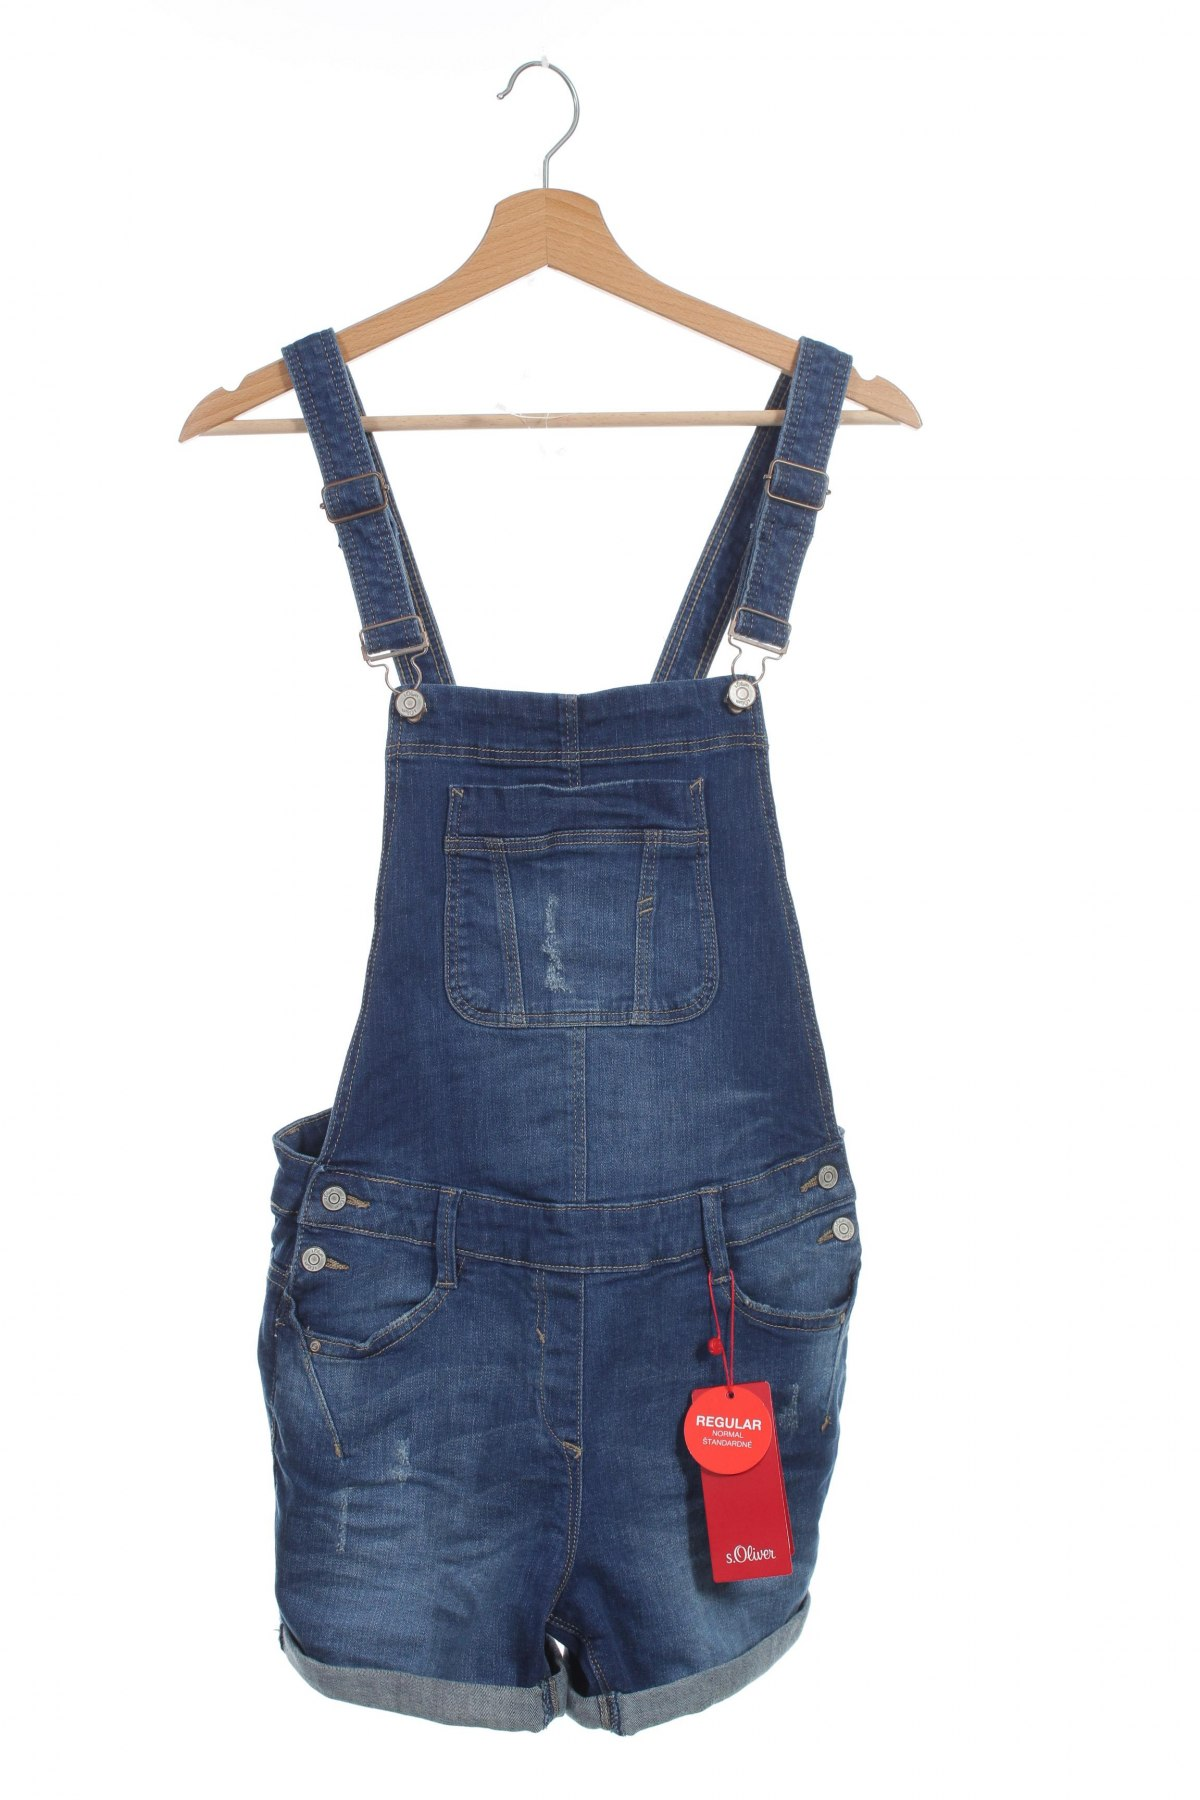 new style f09c1 45b52 Kinder Overall S.Oliver